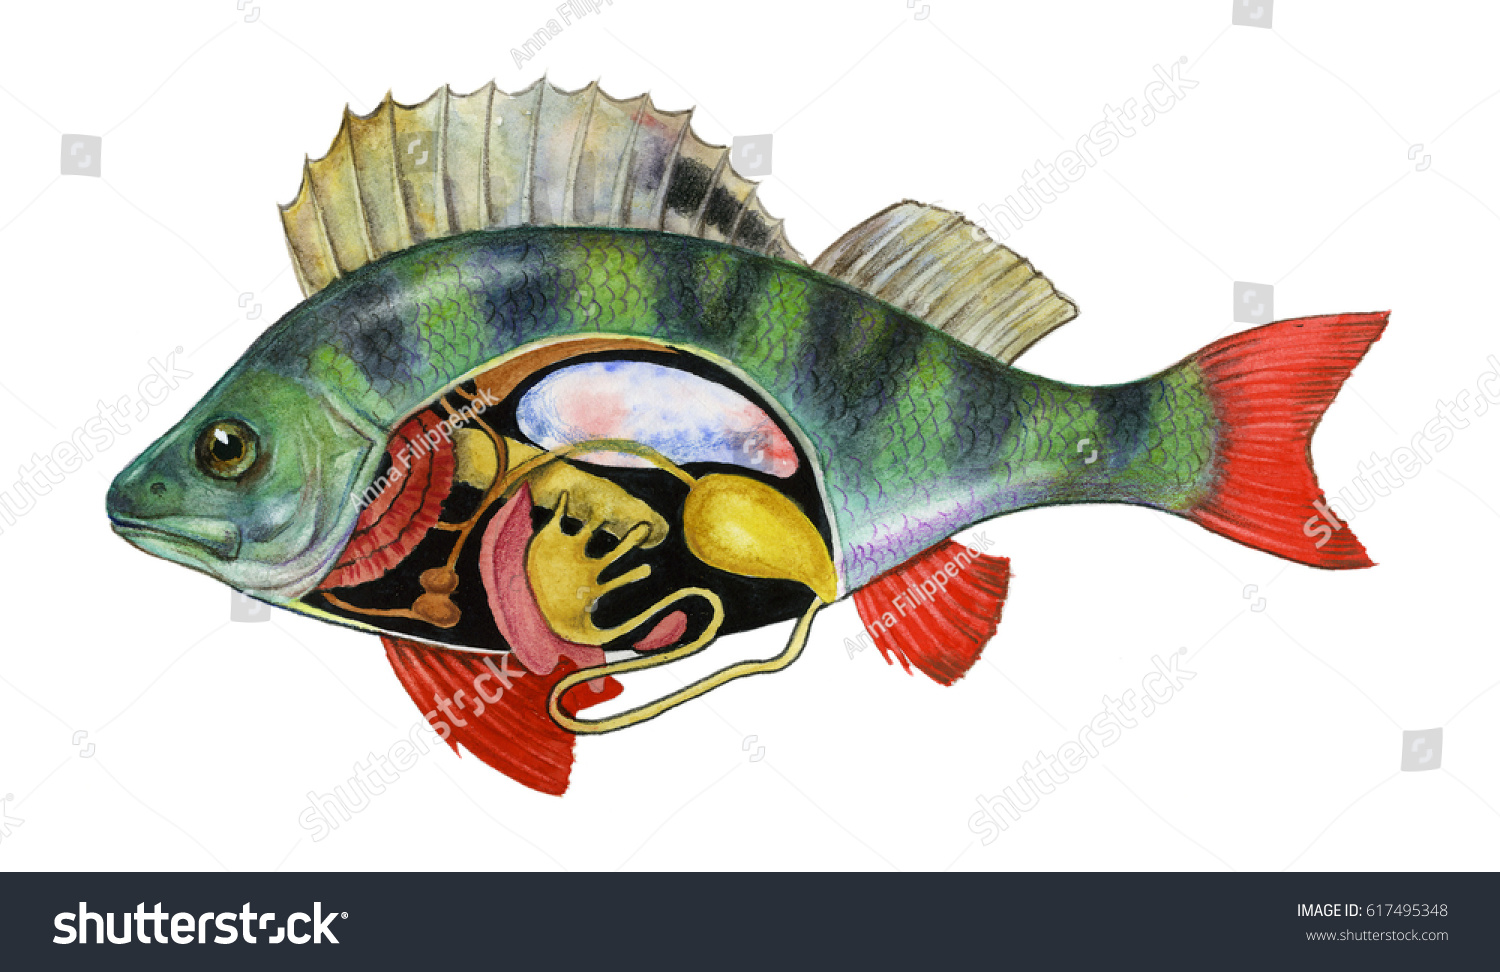 Fish Anatomy Biology Watercolor Hand Drawing Stock Illustration ...